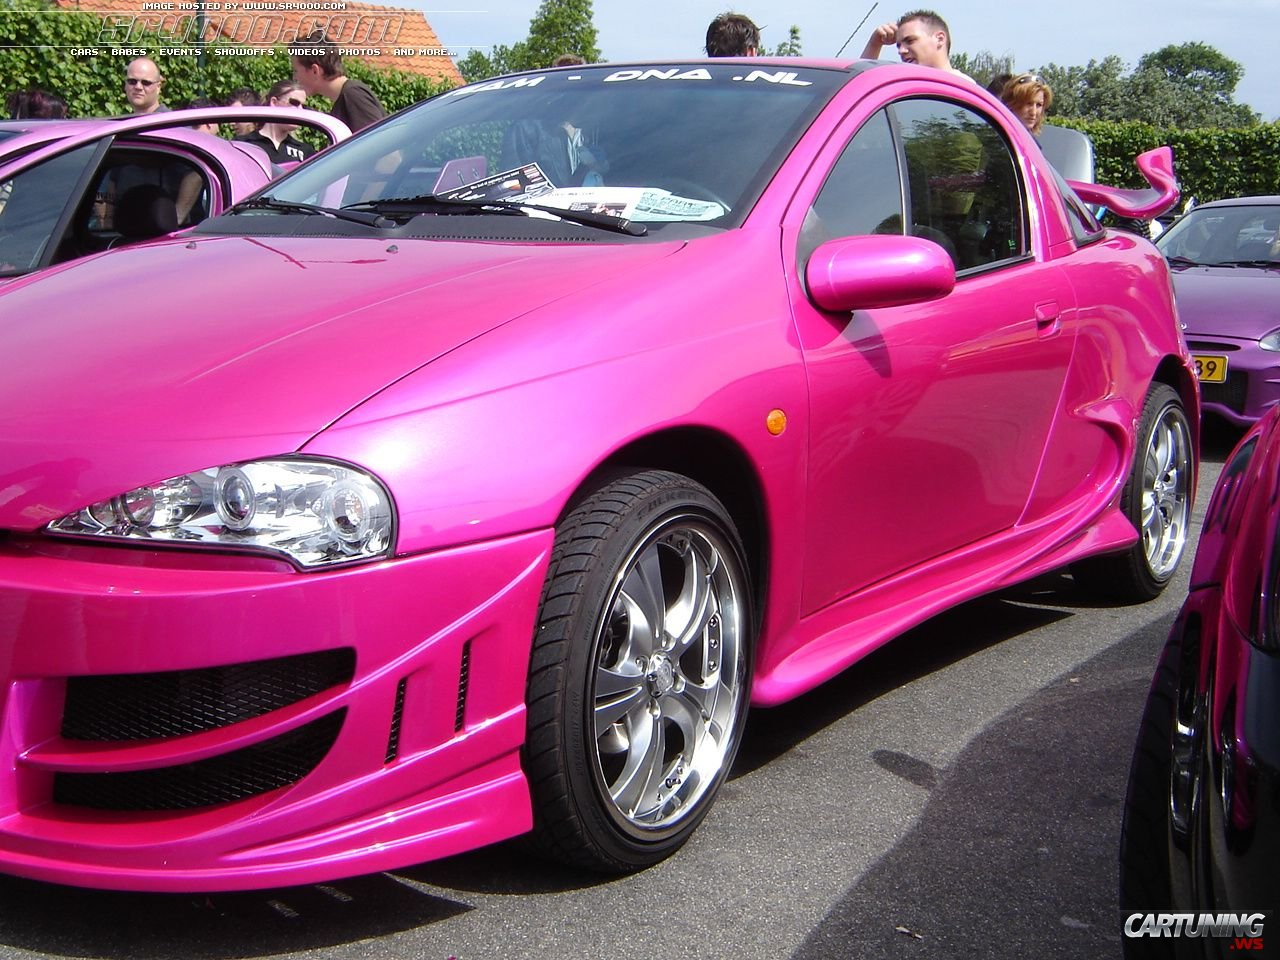 Tuning Opel Tigra 187 Cartuning Best Car Tuning Photos From All The World